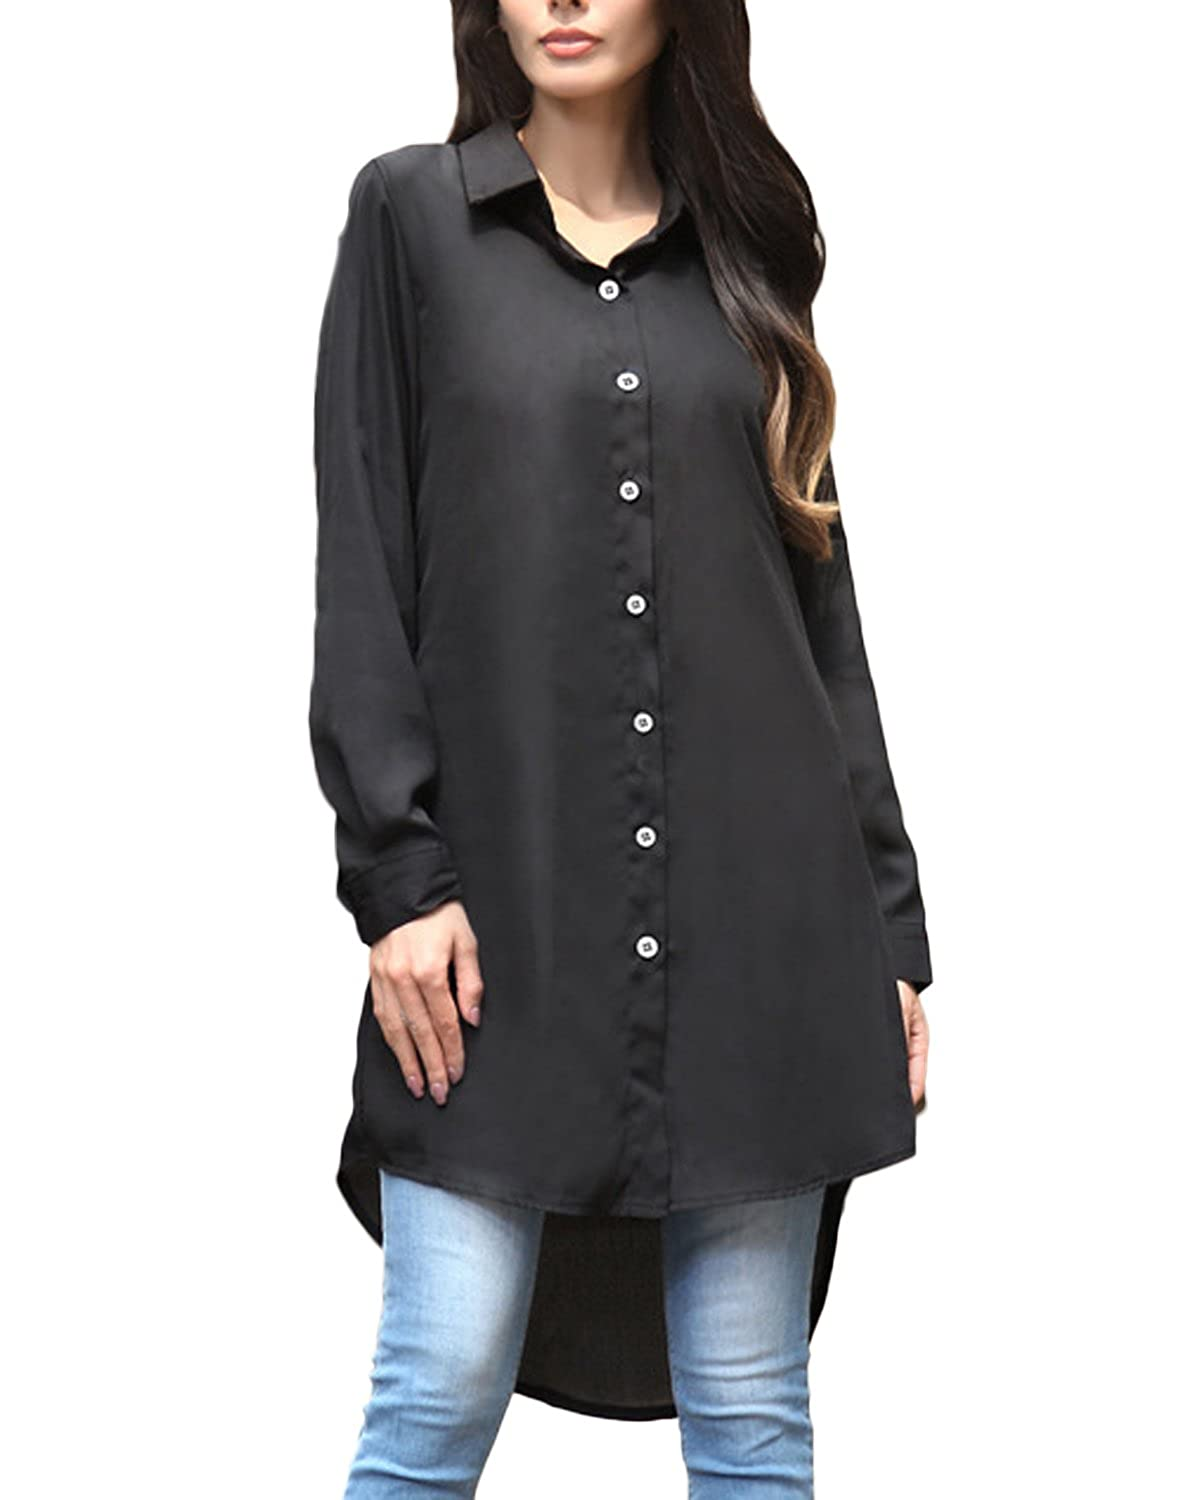 70a98356a48772 Top 10 wholesale Sexy 1 Shirt - Chinabrands.com